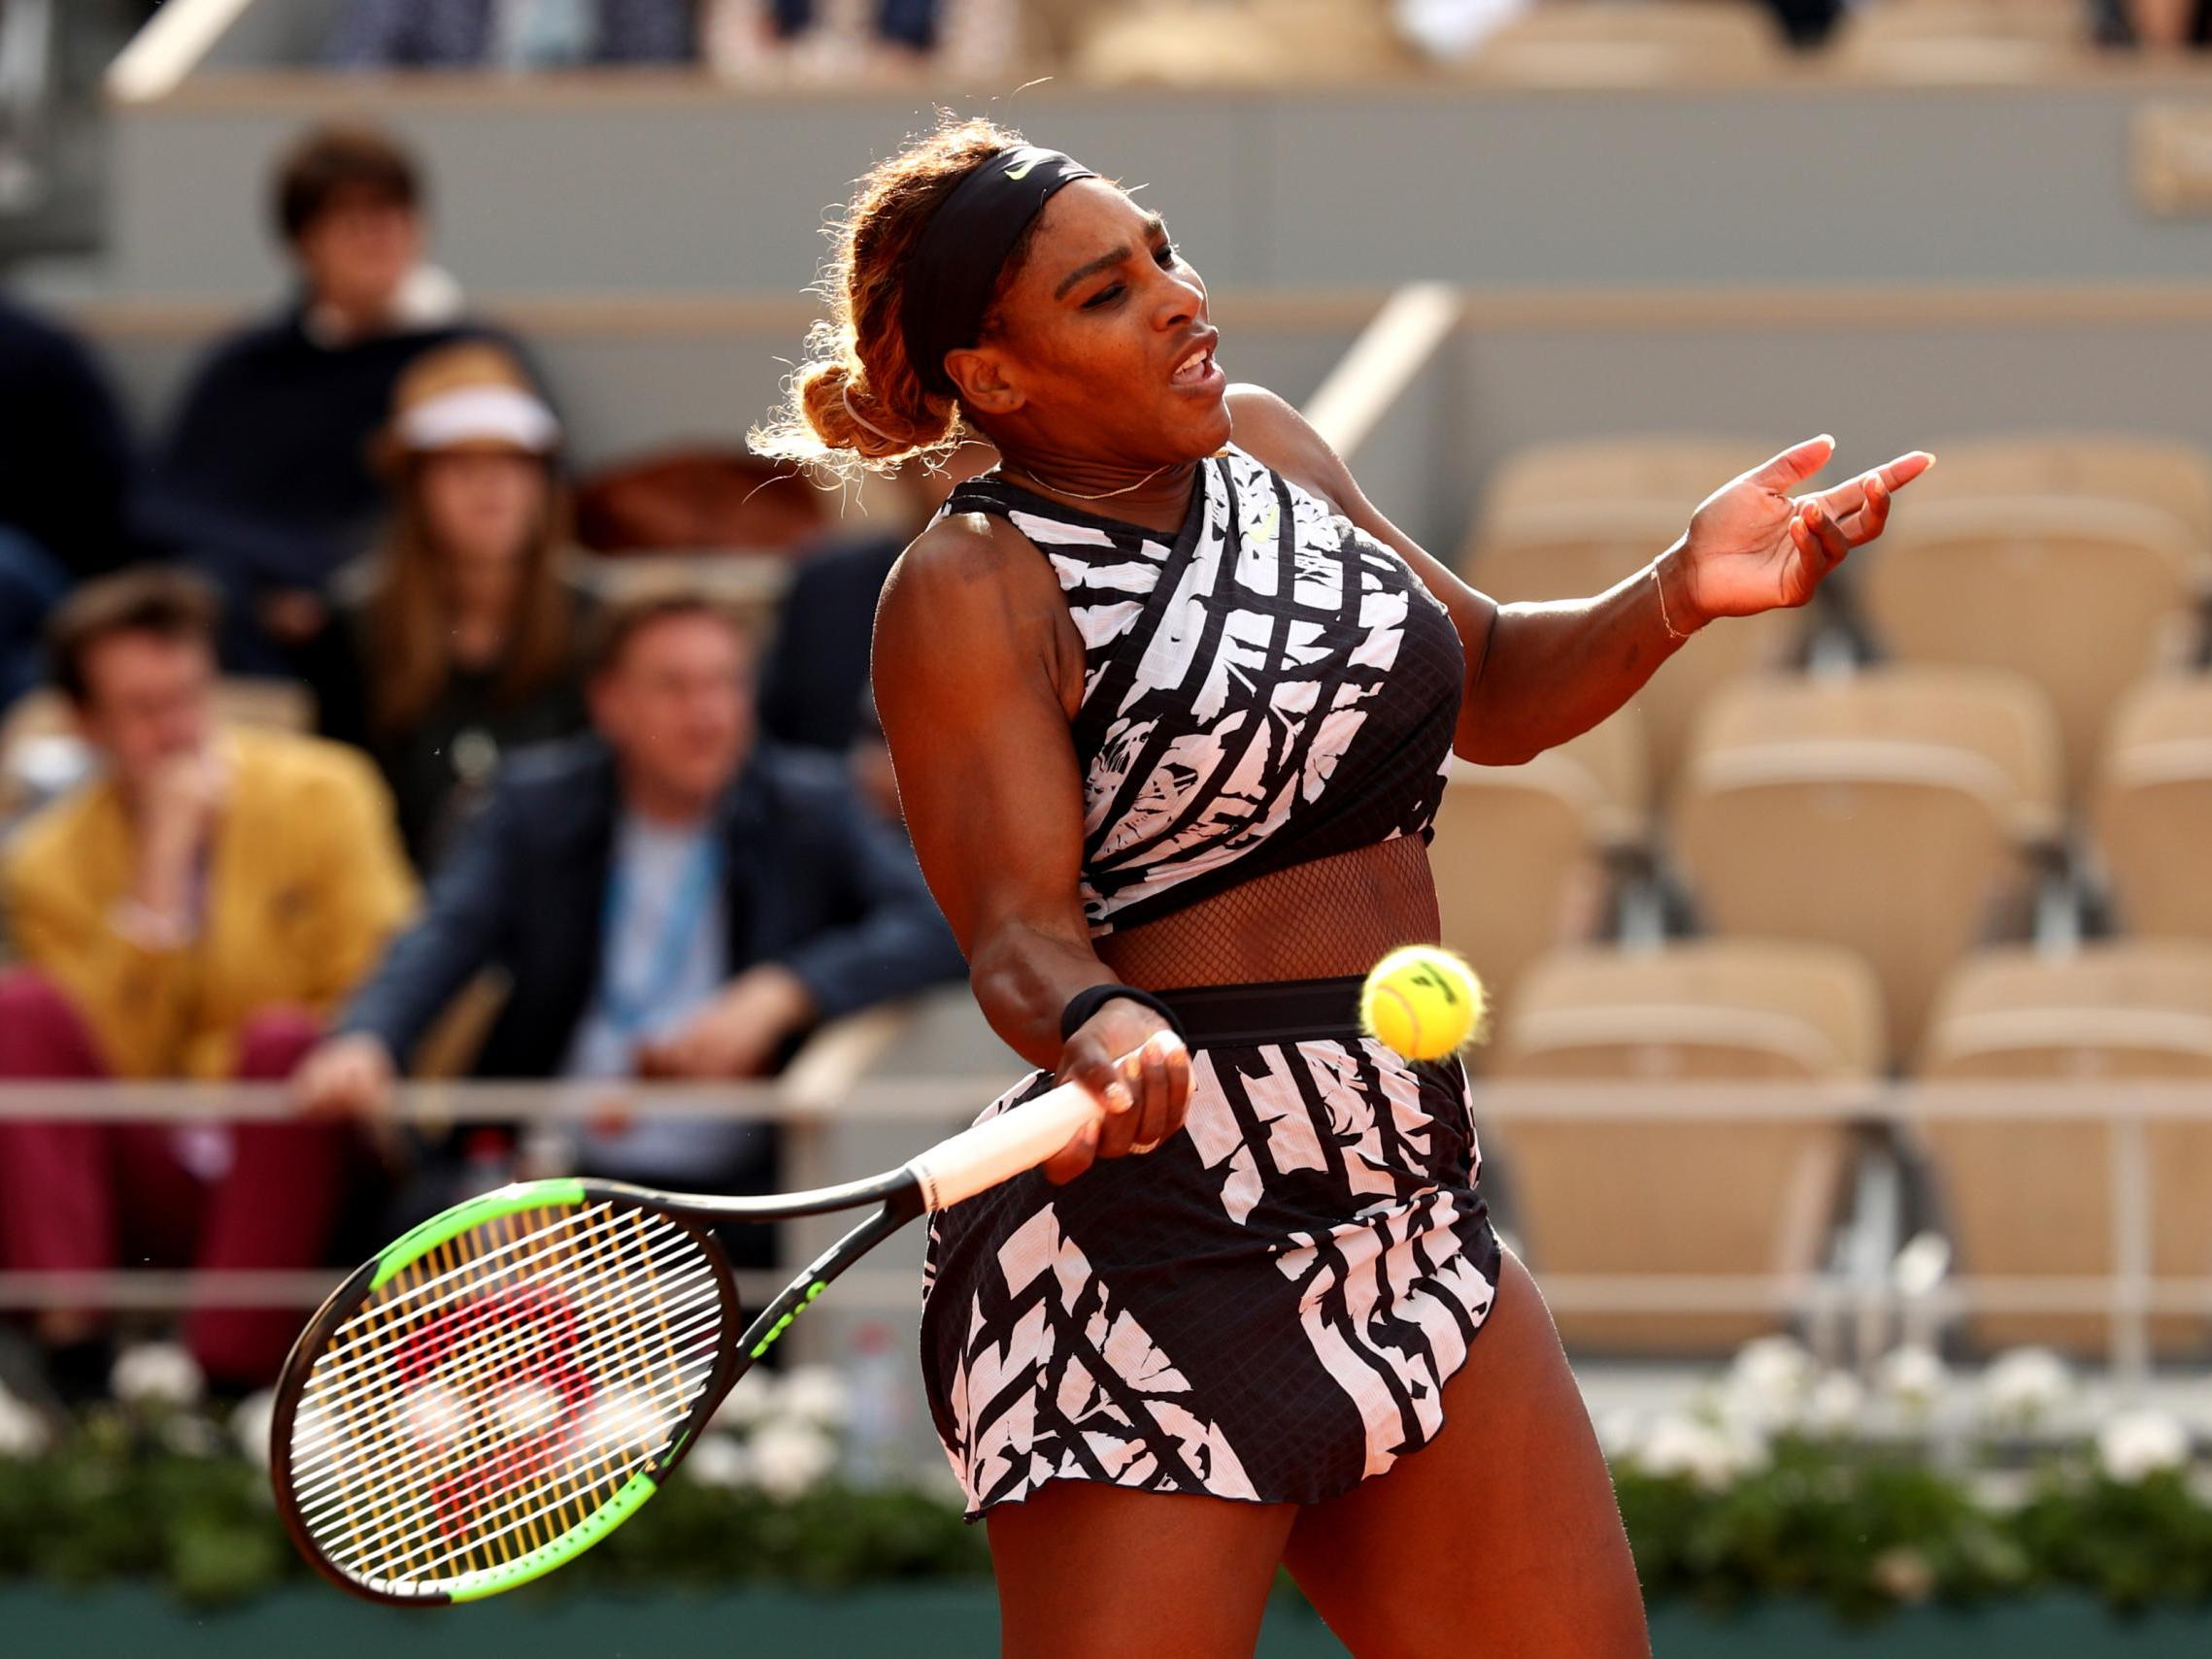 French Open 2019: Serena Williams wears Nike outfit ...